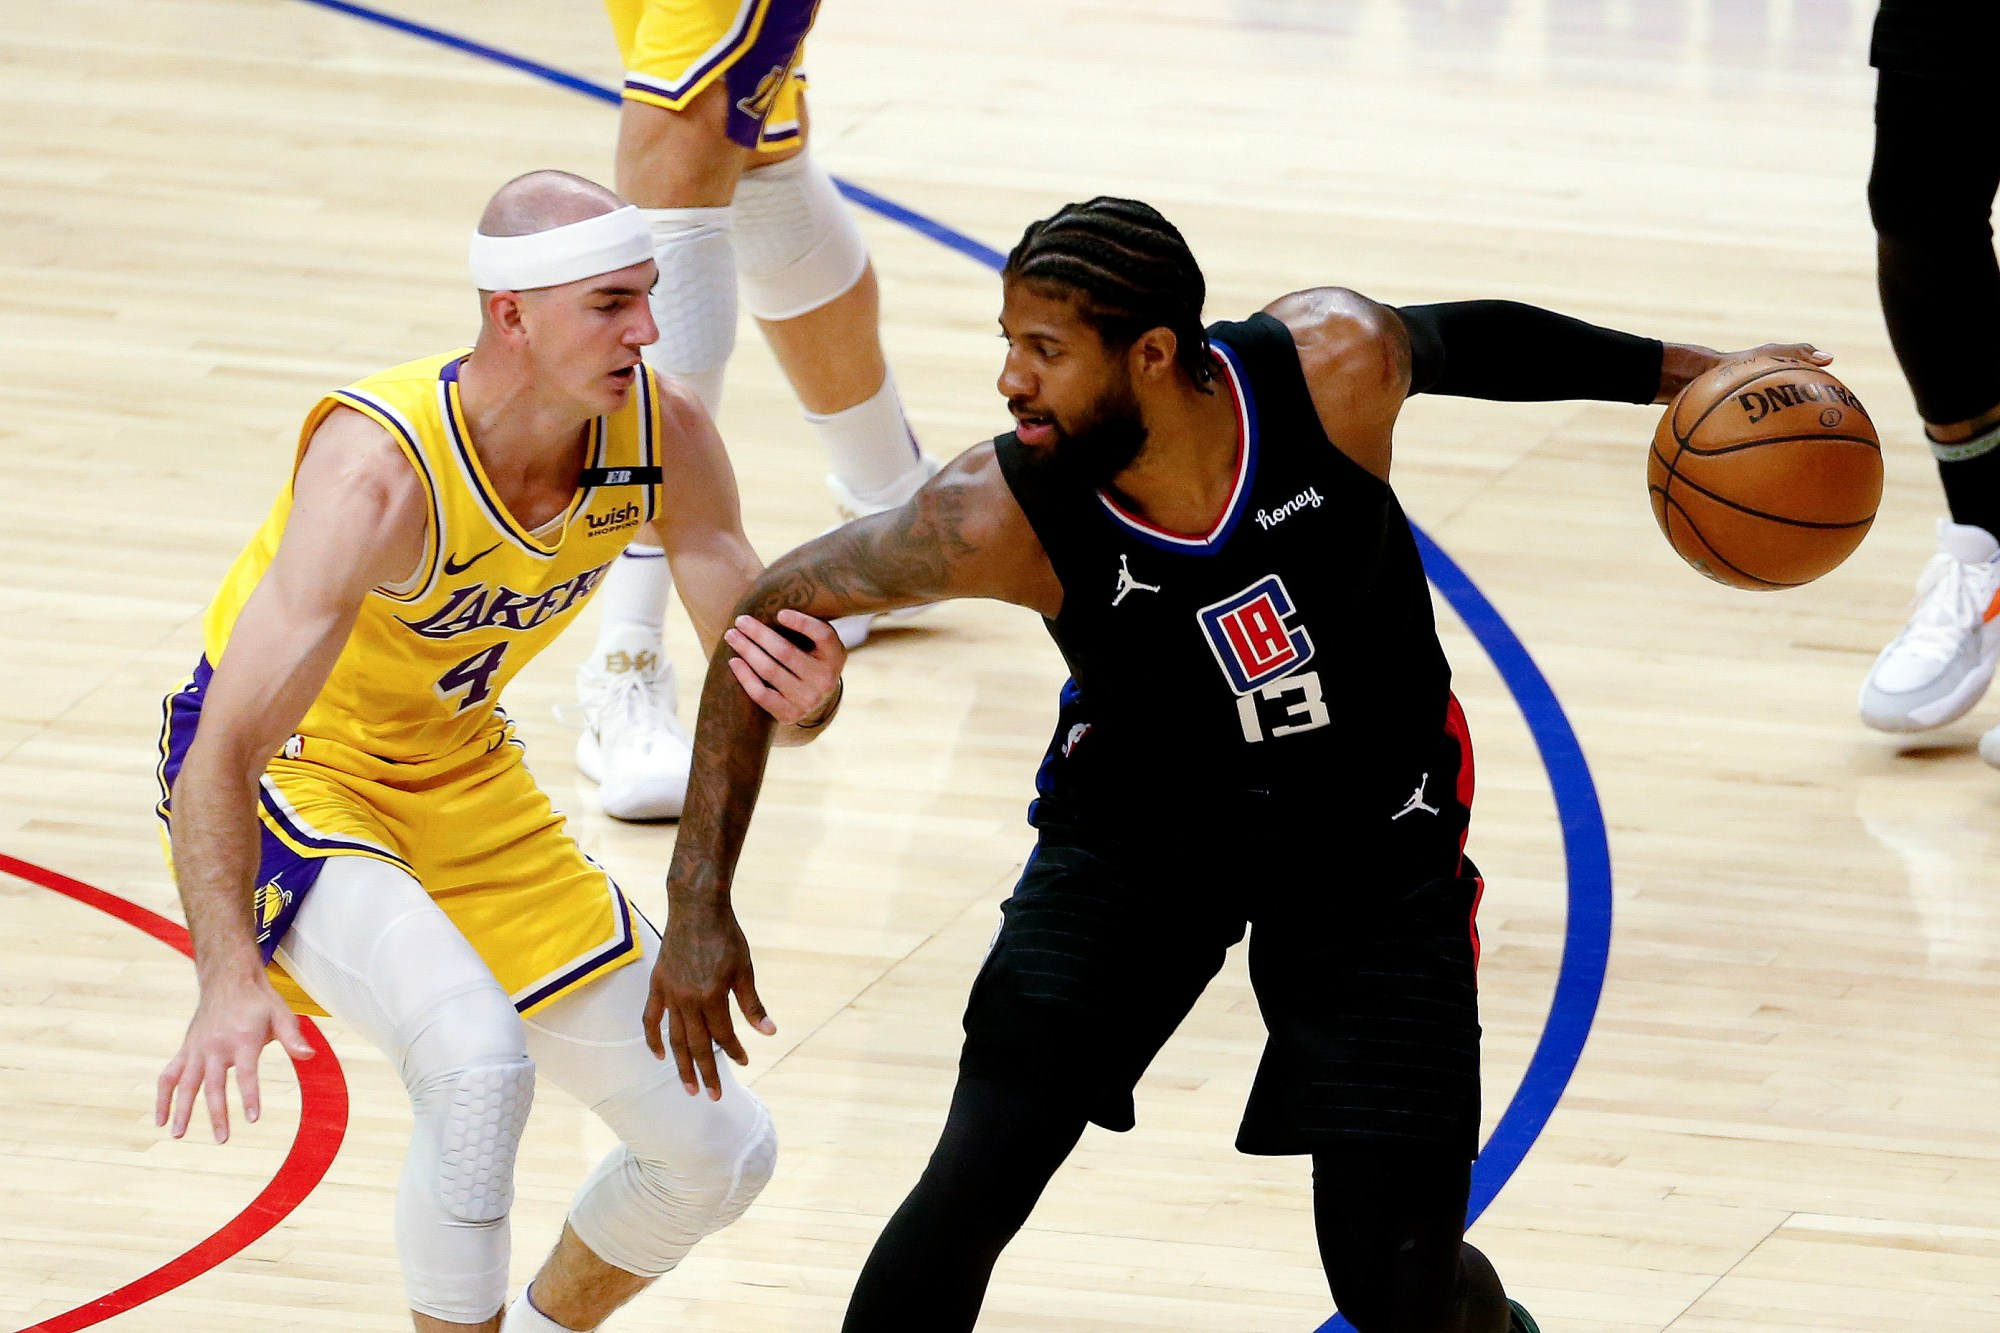 Los Angeles Clippers' Paul George is defended by Los Angeles Lakers' Alex Caruso during the first half of an NBA basketball game at the Staples Center on May 6, 2021. (Ringo H.W. Chiu / Associated Press)